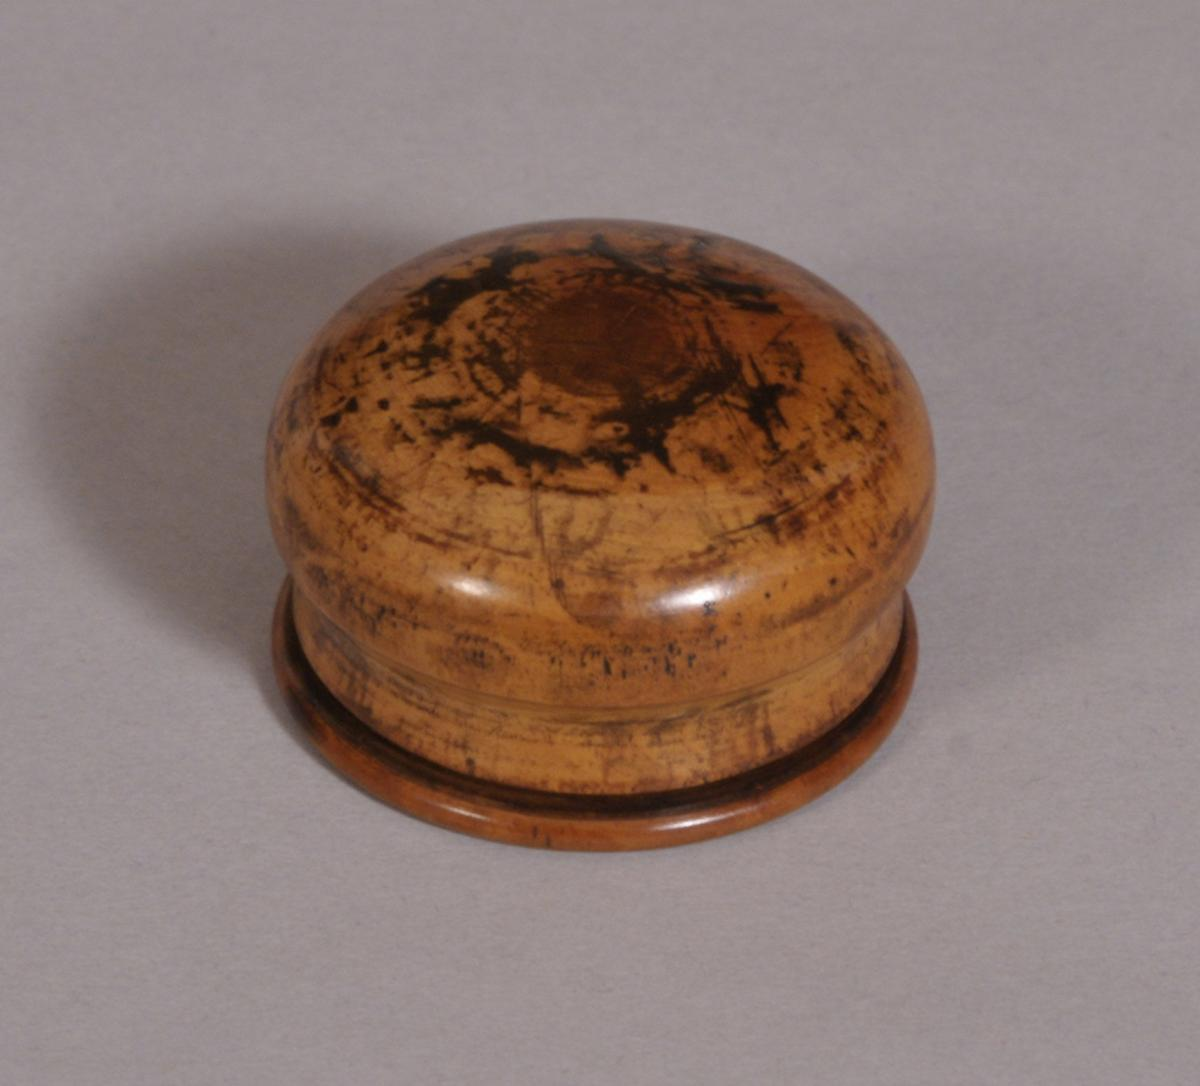 S/3547 Antique Treen 19th Century Boxwood Patch or Pill Box